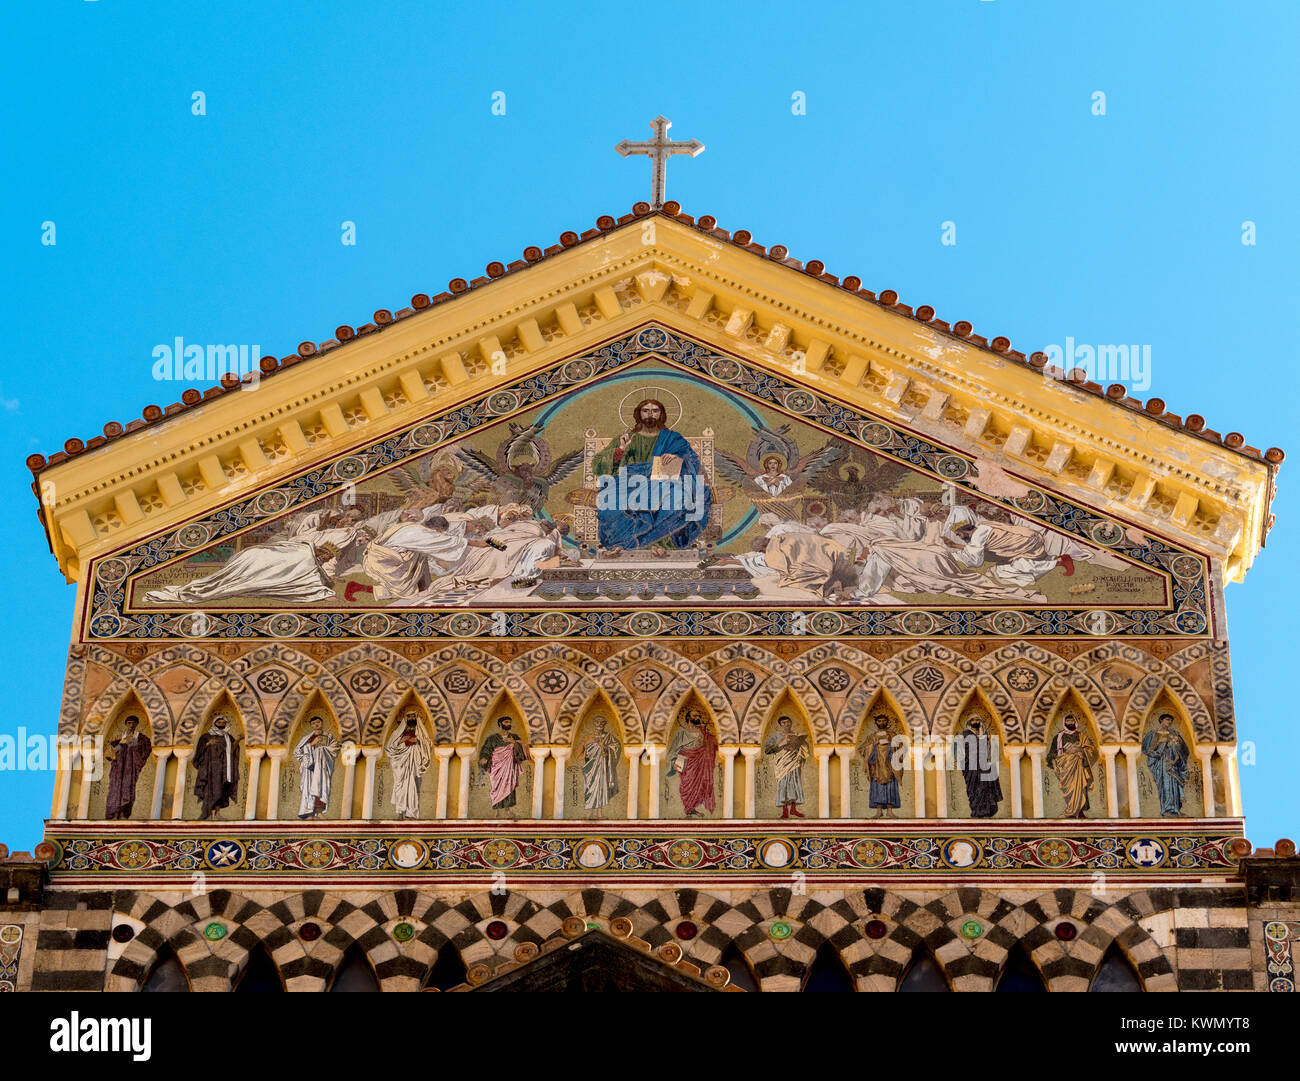 Mosaiced tympanum on the exterior of Amalfi Cathedral. Amalfi, Italy. - Stock Image